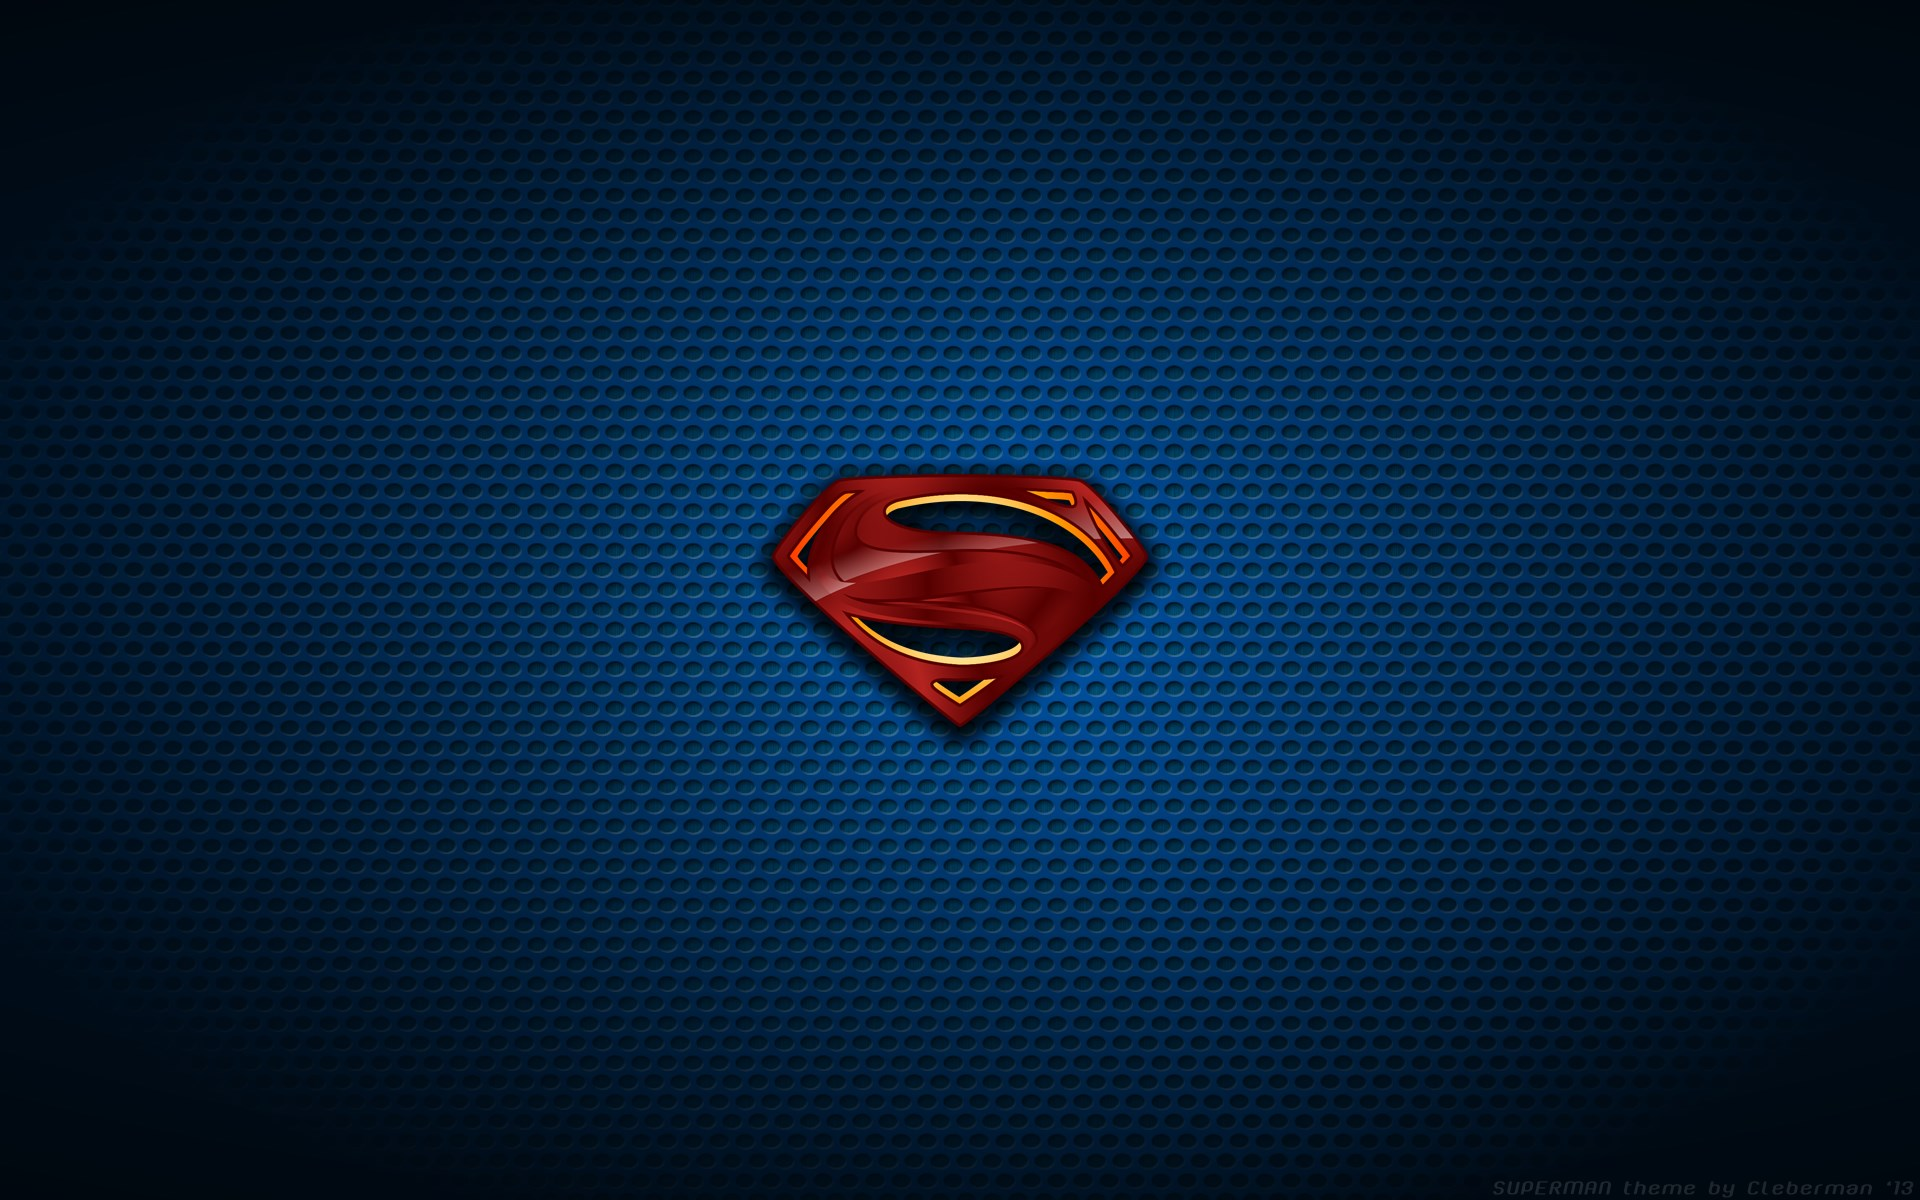 superman logo hd wallpapers 1080p wallpapersafari hd logos download hd logos for photography